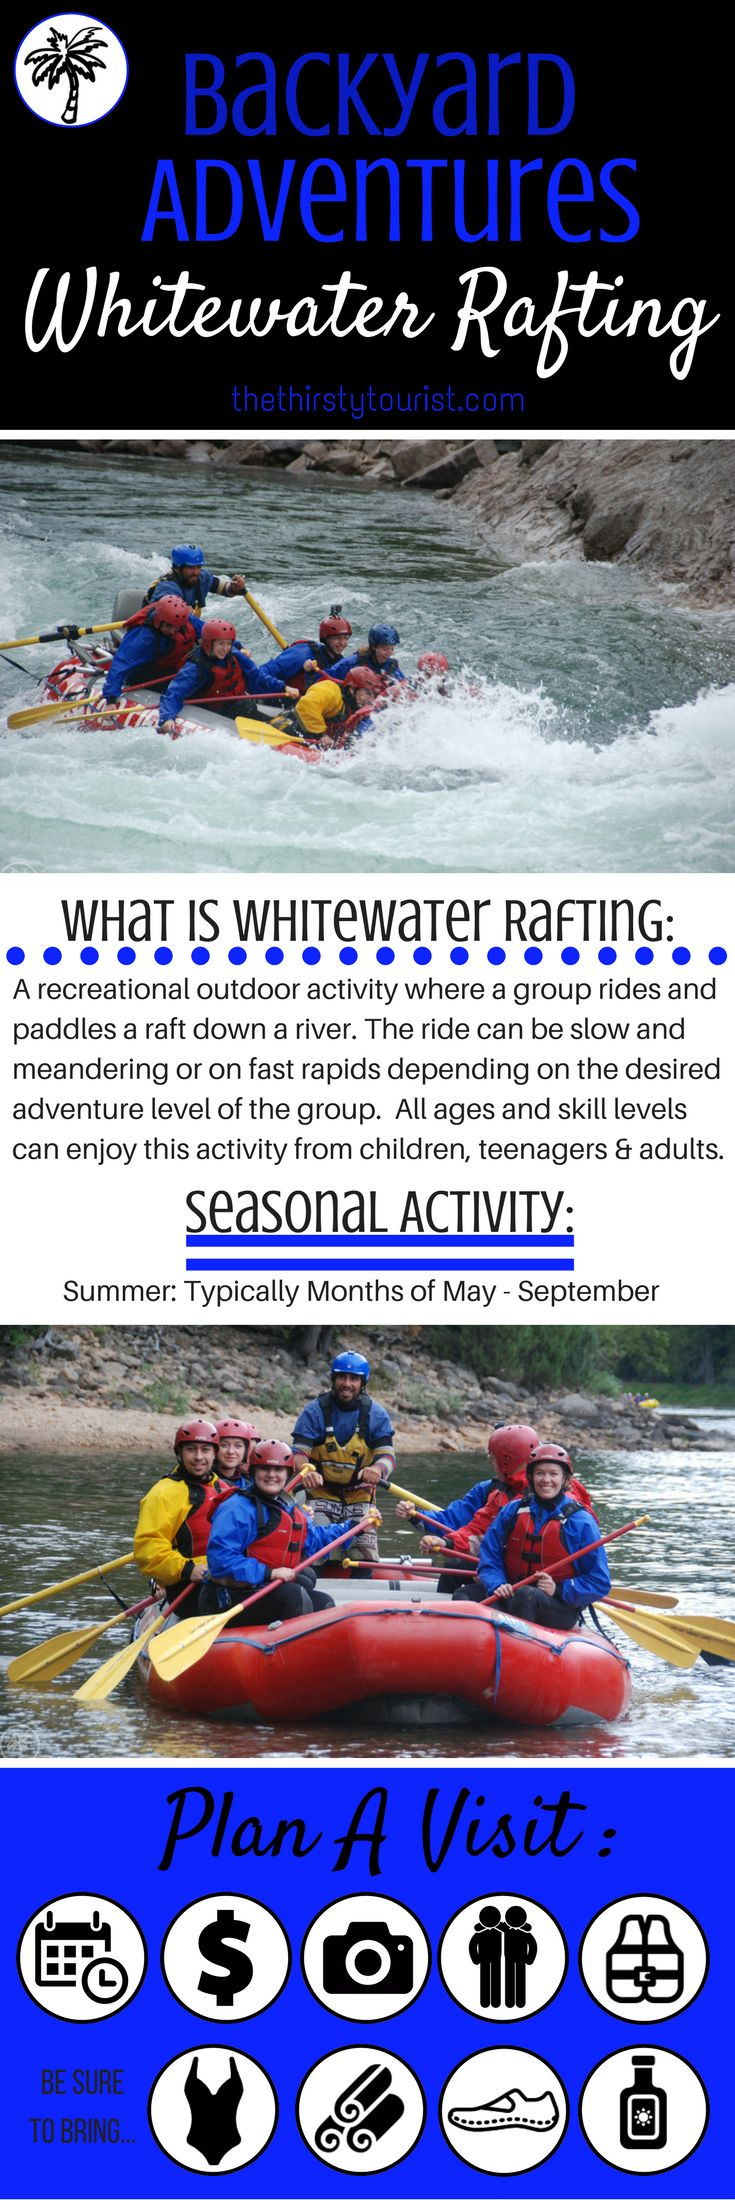 The Thirsty Tourist's Backyard Adventure Crib Sheet for Whitewater Rafting.